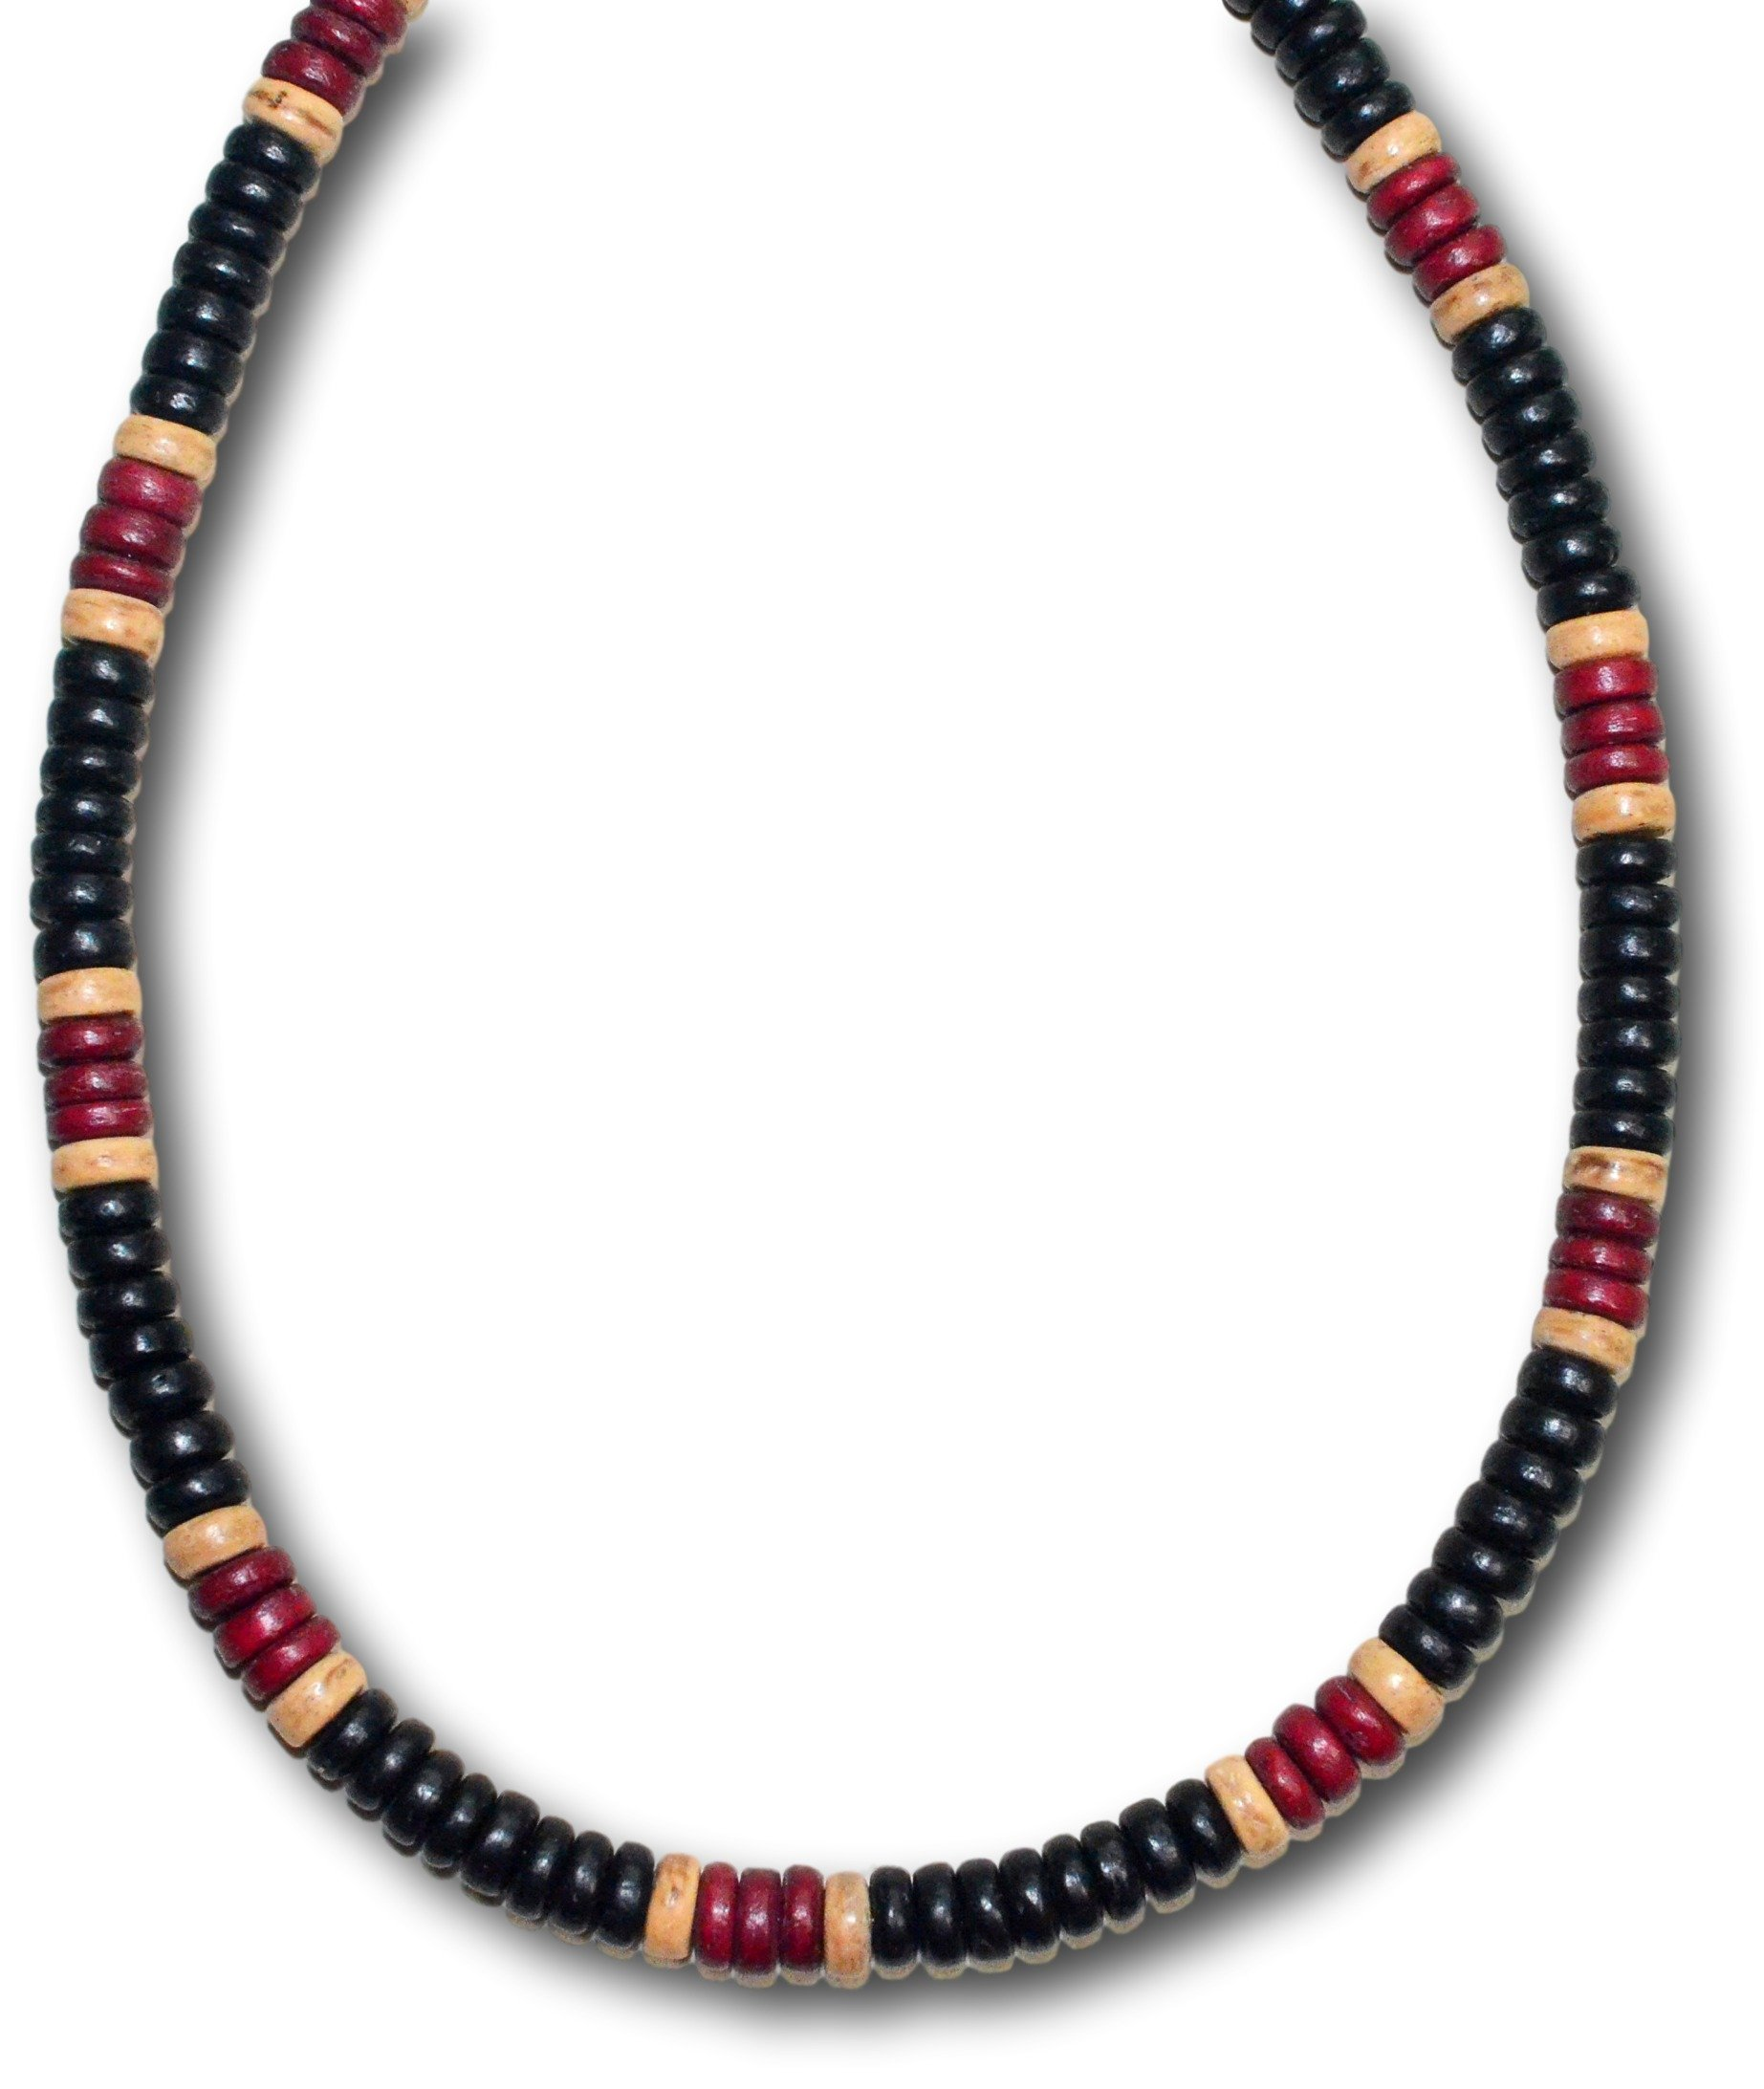 Native Treasure - 18'' Soho Black, Brown Coco Shell Surfer Necklace - 8mm (5/16'') (18 Inches)